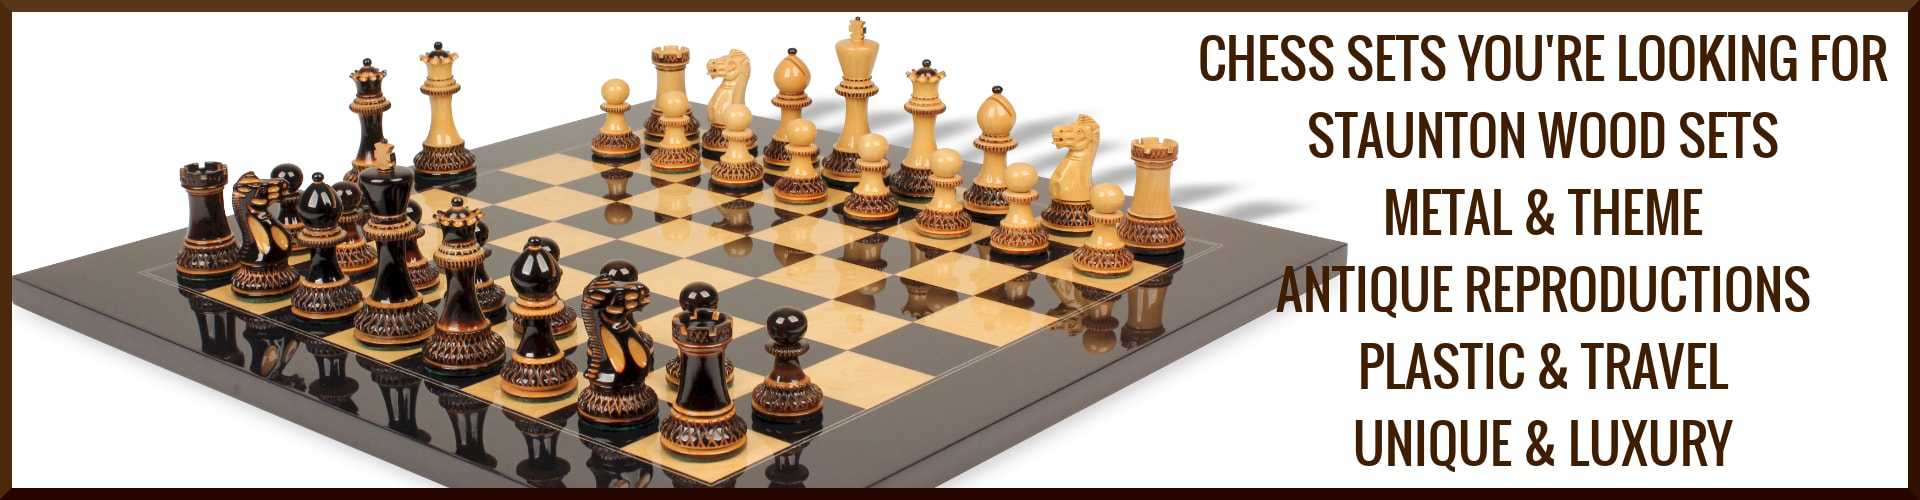 chess-sets